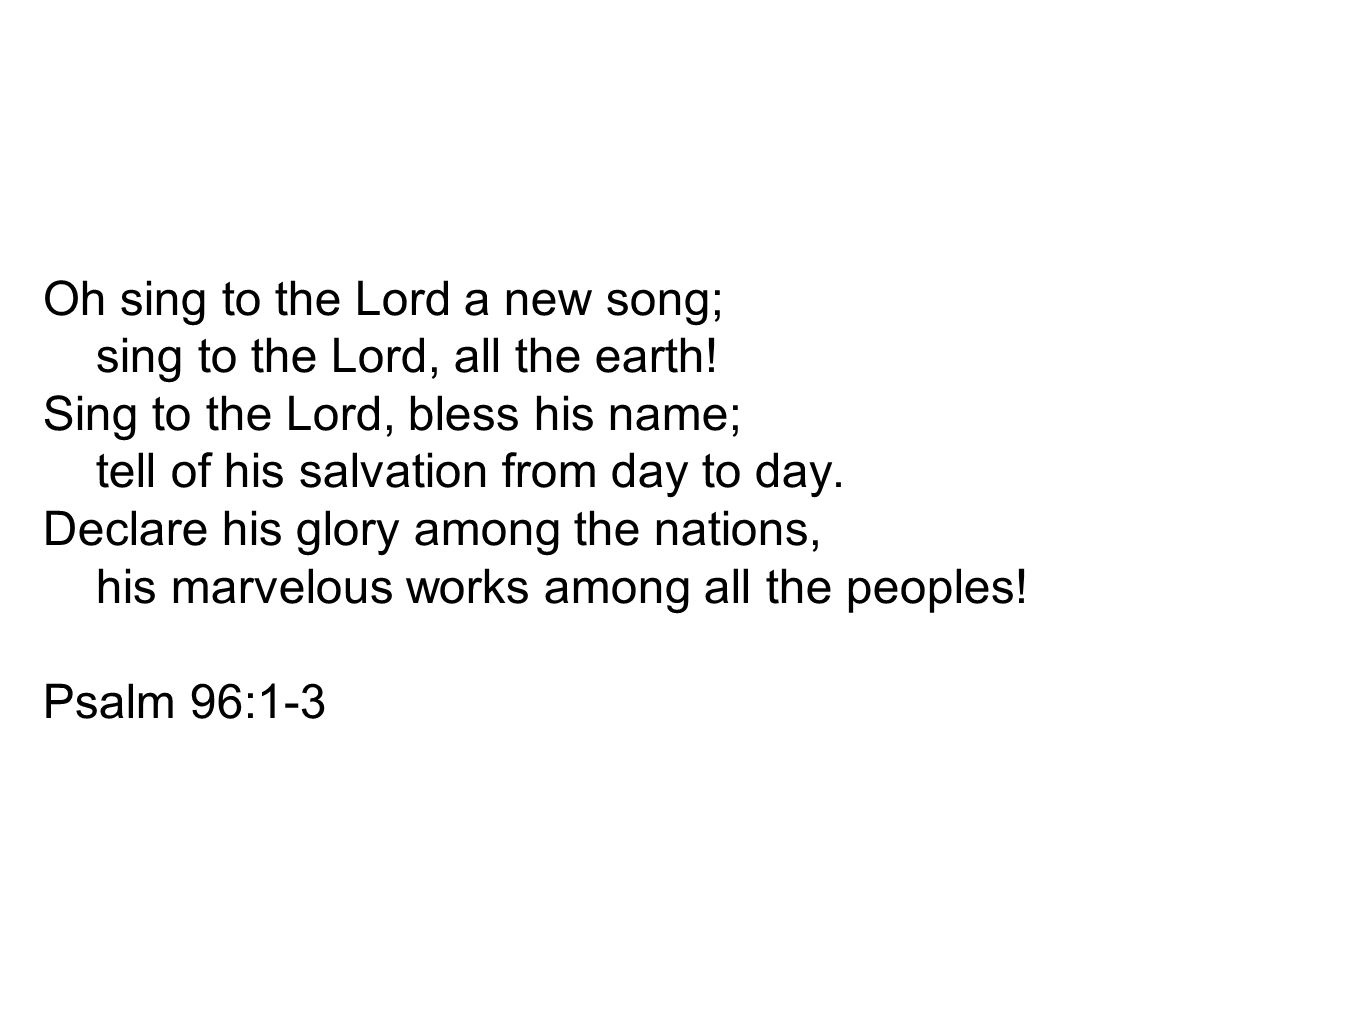 Oh sing to the Lord a new song; sing to the Lord, all the earth!